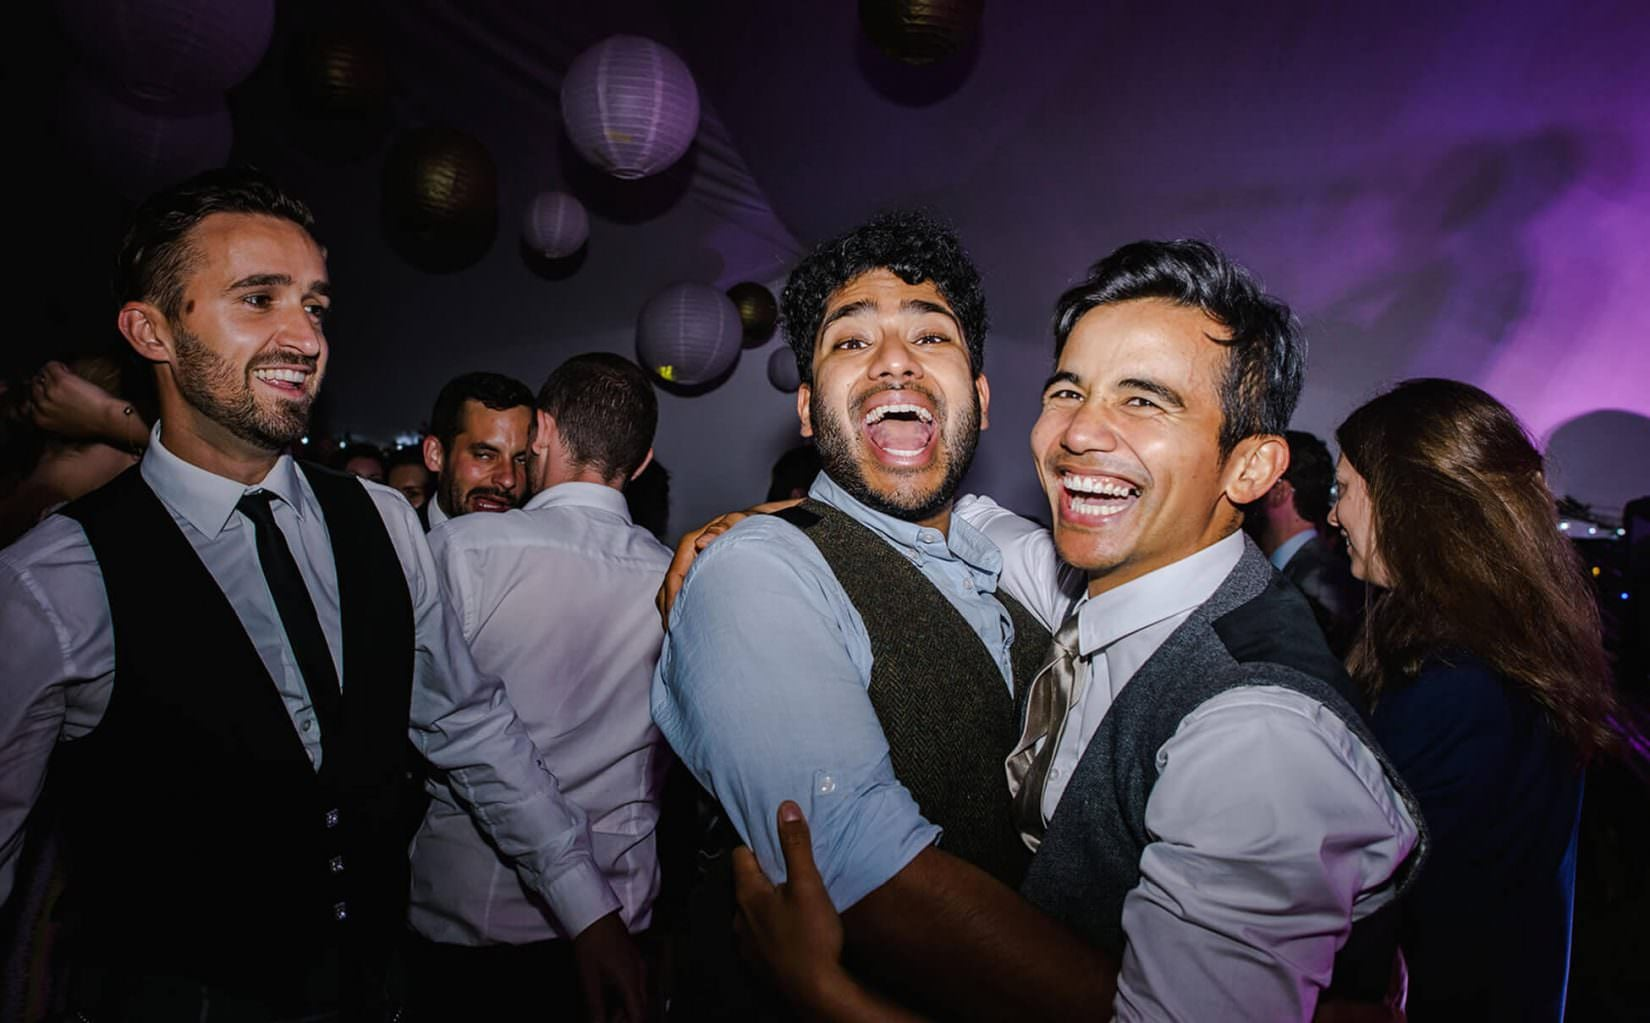 groomsmen having fun on the dance floor